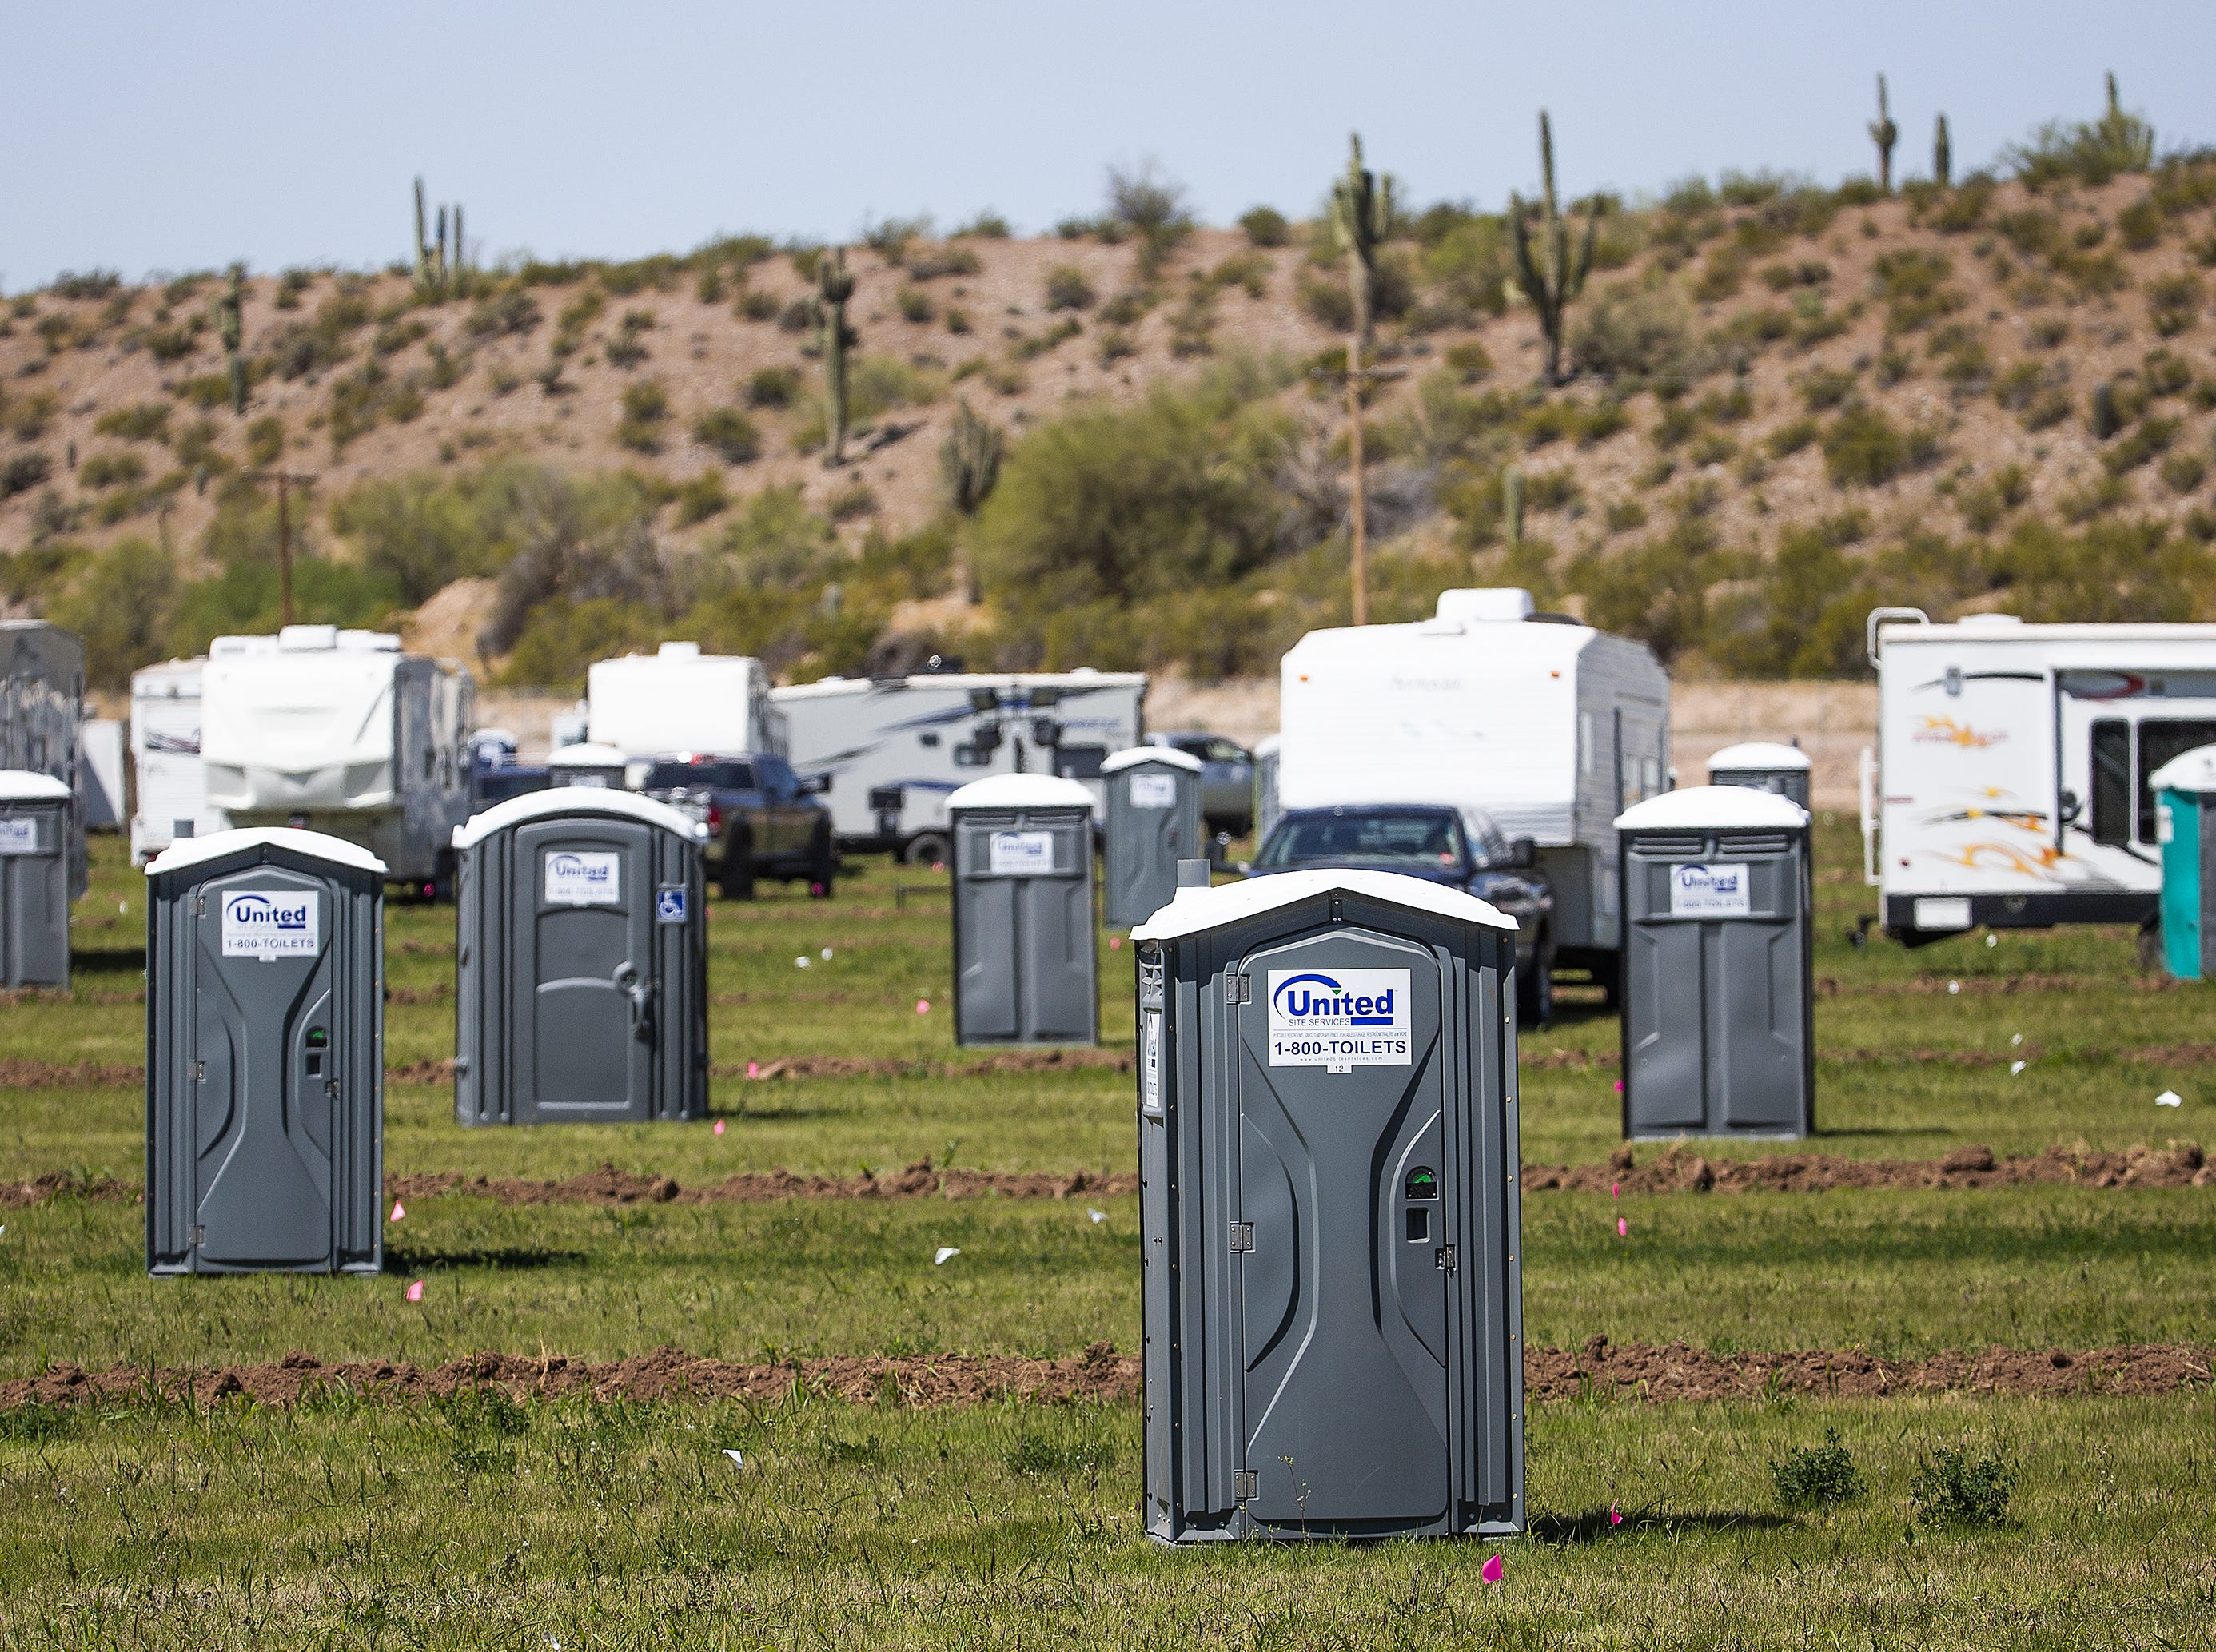 Hundreds of portable toilets are scattered throughout the campsites at the Country Thunder Arizona 2019 music festival outside Florence, April 10, 2019.